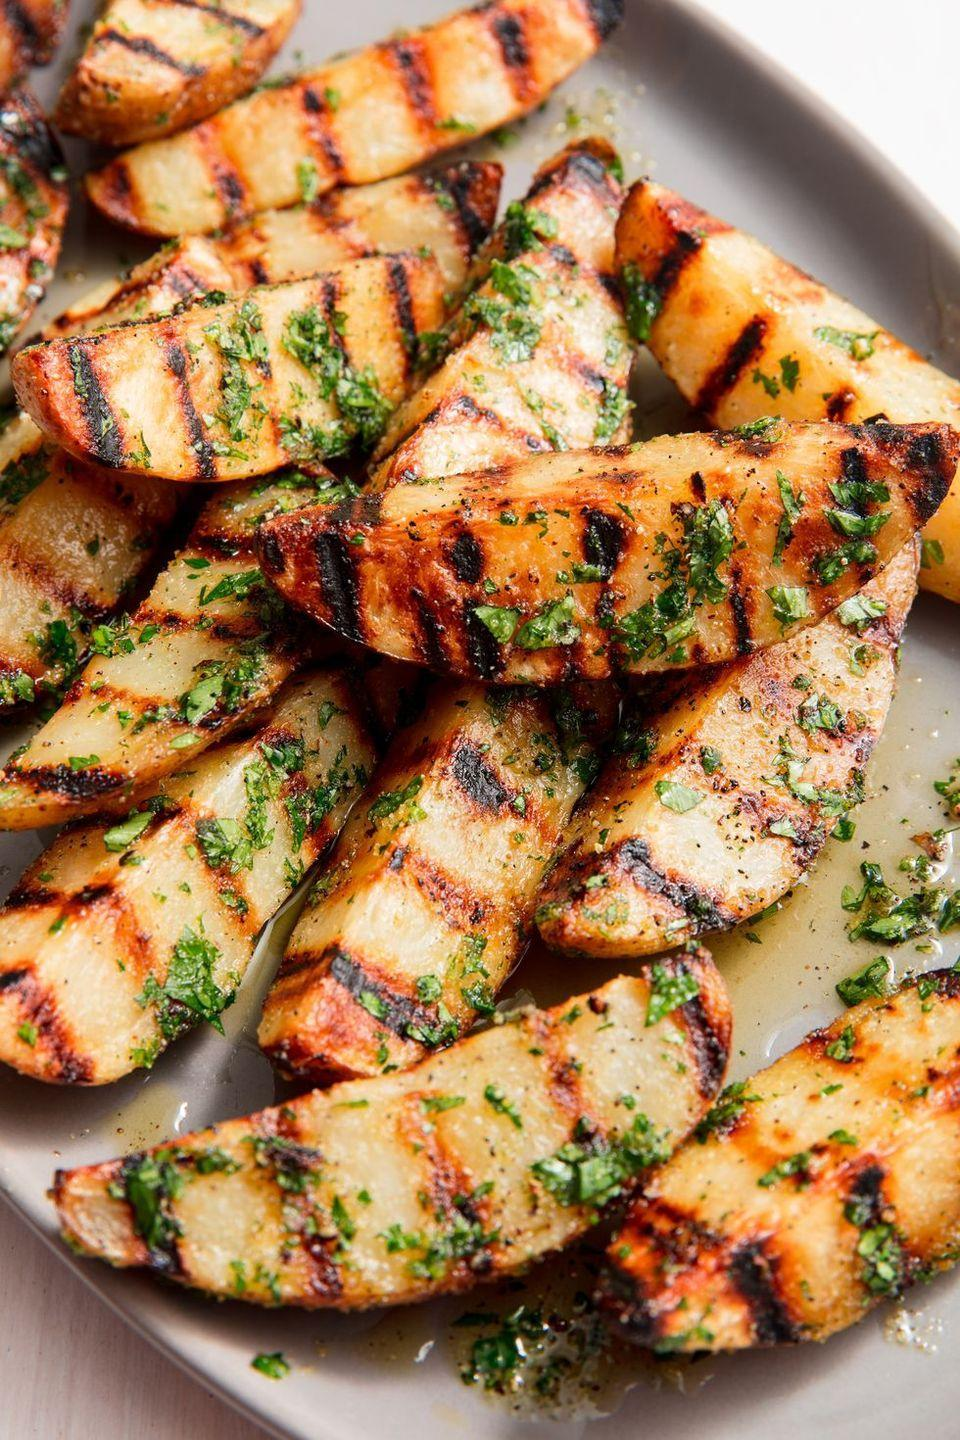 "<p>These potatoes are the perfect summer side. Throw 'em on the grill next to your burgers for a smokey, summer take on burgers & chips. Take it from us, though, and don't skip step 1. It's pretty much impossible to get potatoes tender and cooked through on the grill alone; parboiling the potatoes guarantees creamy centres and crisp, charred outsides.</p><p>Get the <a href=""https://www.delish.com/uk/cooking/recipes/a28794676/best-grilled-potatoes-recipe/"" rel=""nofollow noopener"" target=""_blank"" data-ylk=""slk:Grilled Potatoes"" class=""link rapid-noclick-resp"">Grilled Potatoes</a> recipe.</p>"